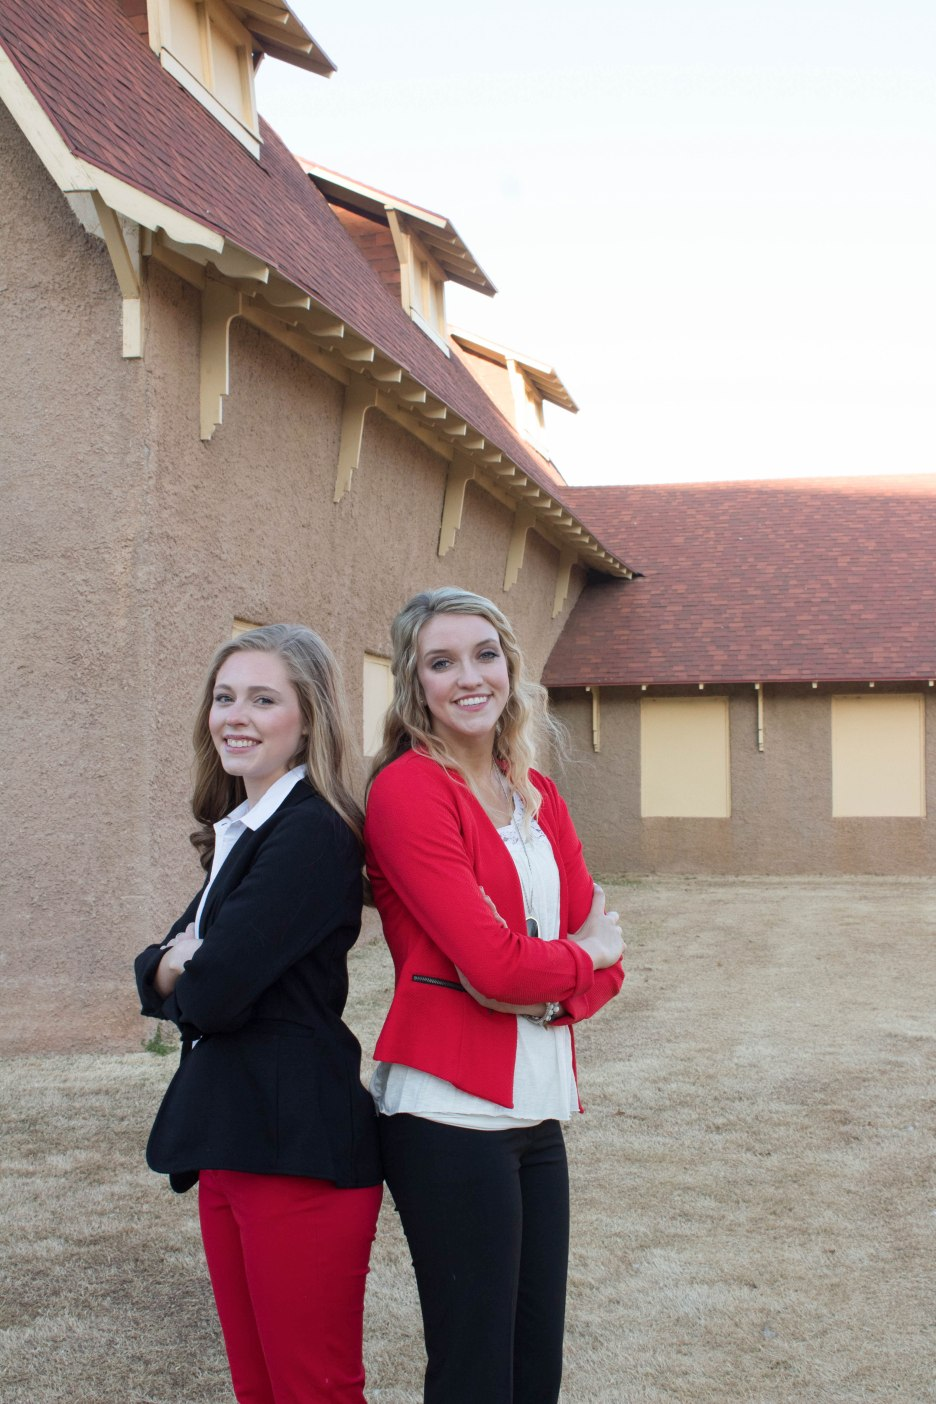 Maggie Pipkin (left) and Kaylynn Kiker (right) showcase their professional attire which must be worn to all MILE events. Dressing professionally is an important skill learned through MILE.